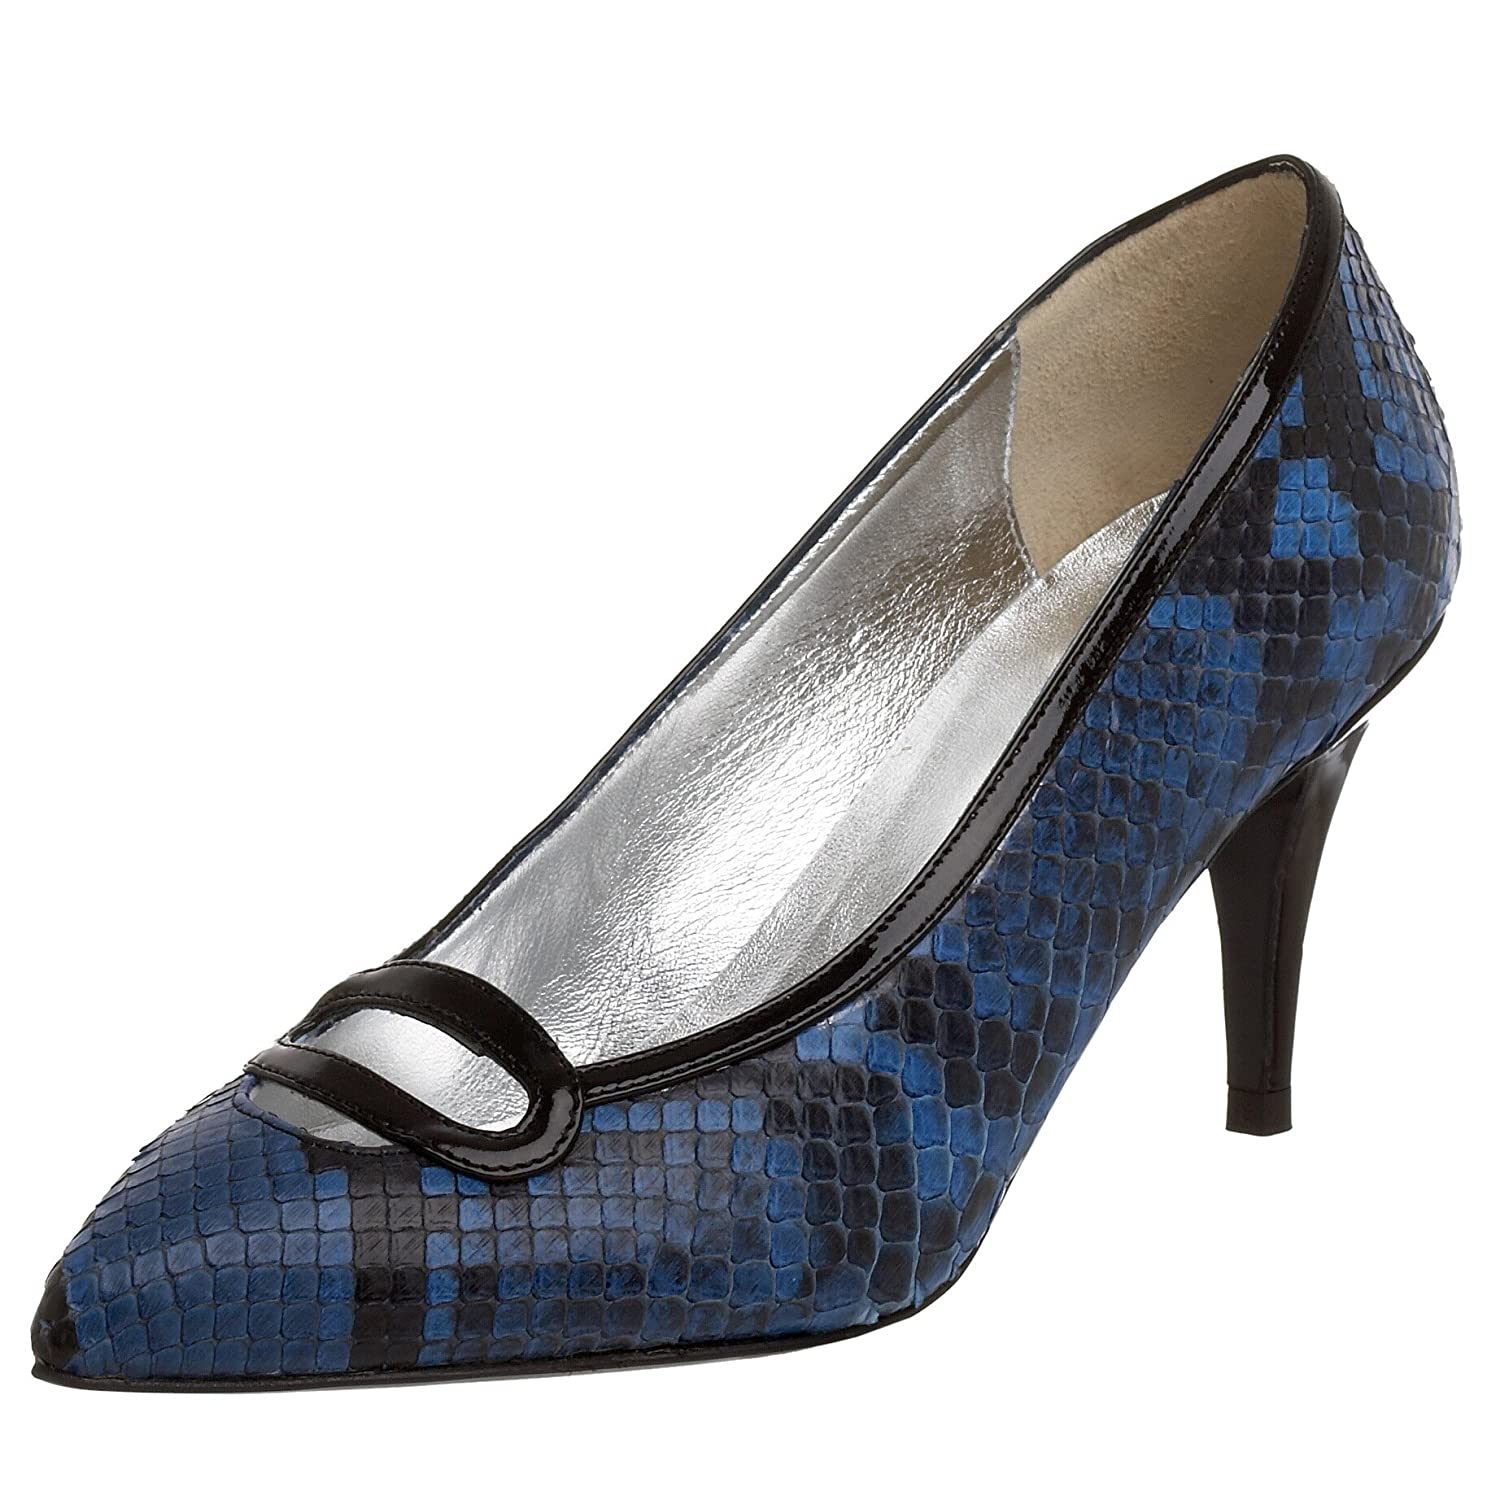 Claudia Ciuti Emilia Pump: Categories - Free Overnight Shipping & Return Shipping :  blue black pump heel